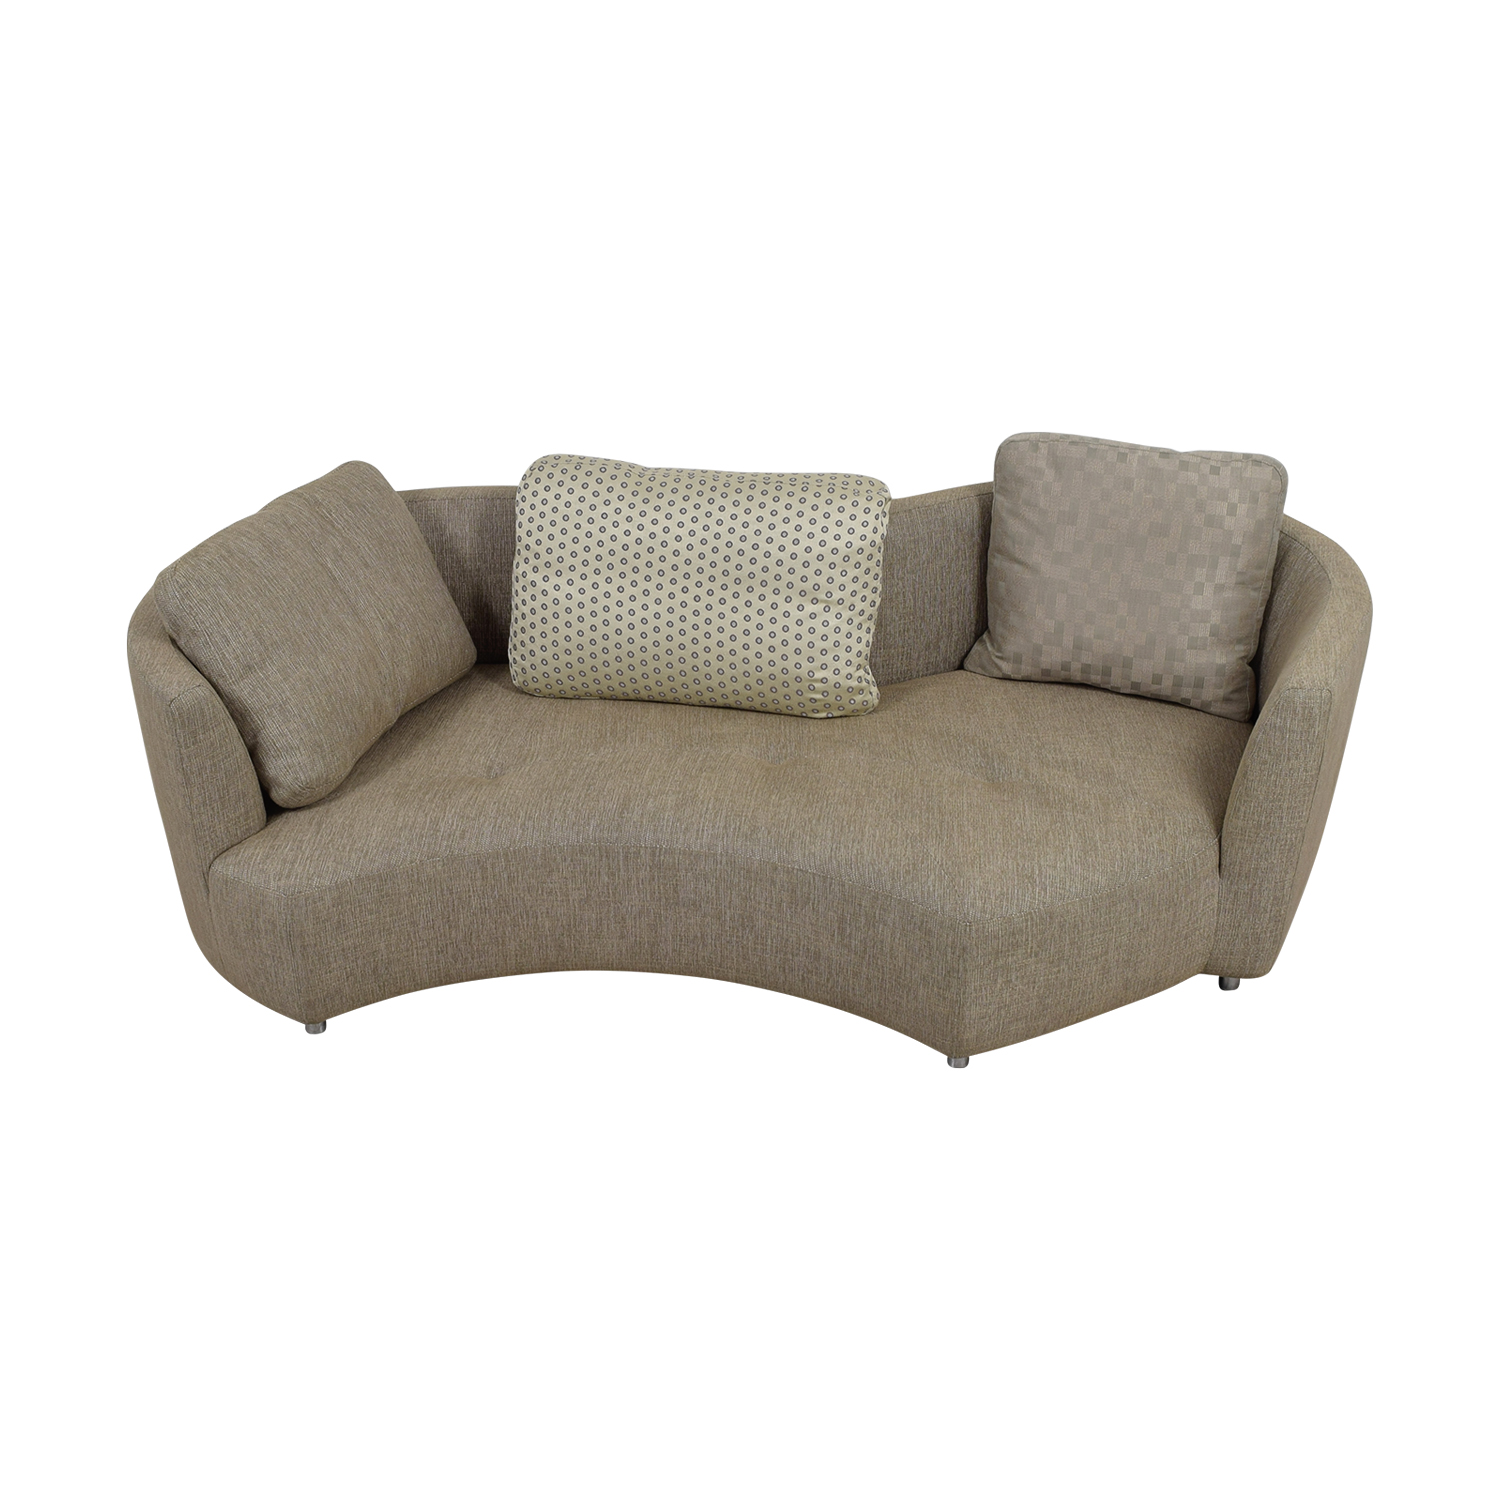 Roche Bobois Three Seater Tan Tweed Sofa Used